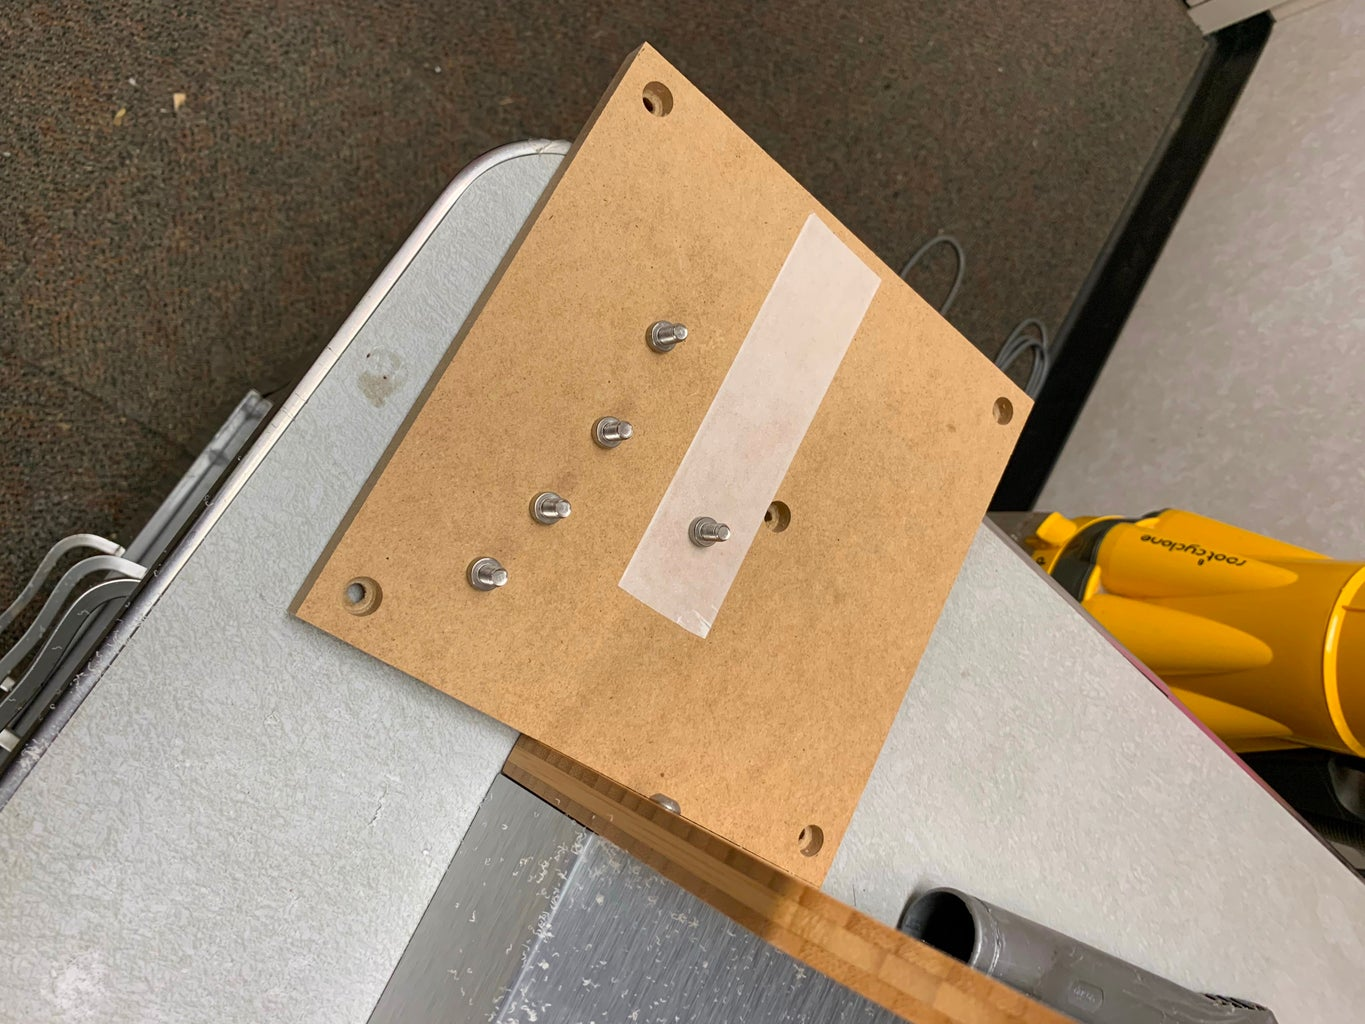 Attach Your Wooden Spacer Board